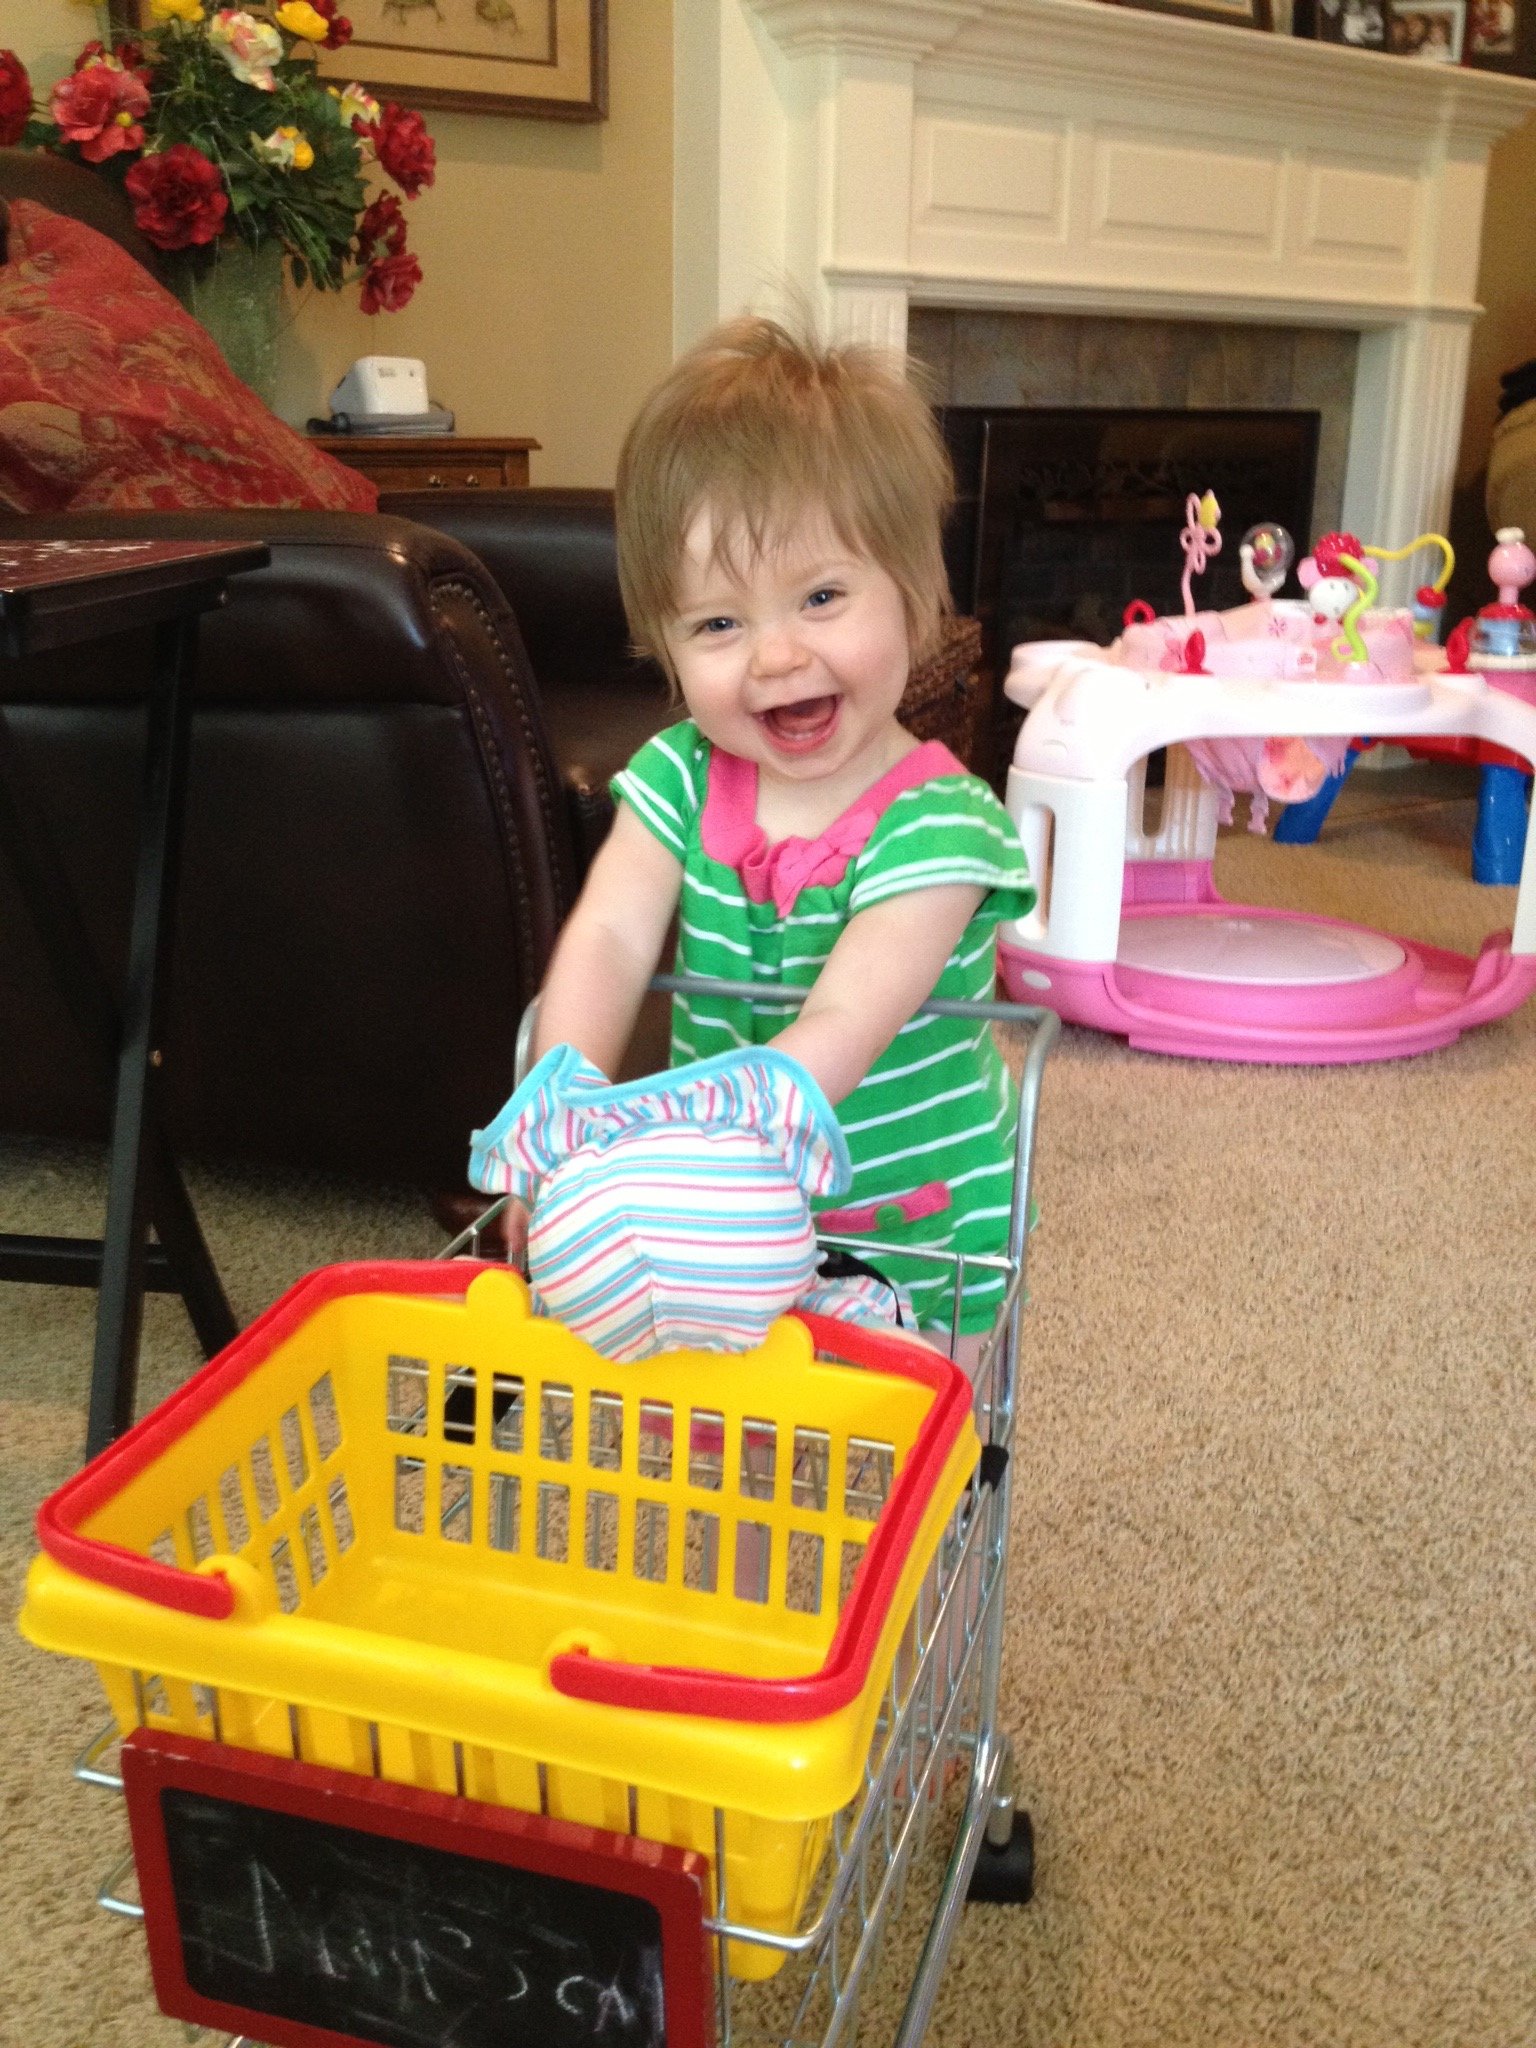 A smiling young girl pushes a toy plastic cart.